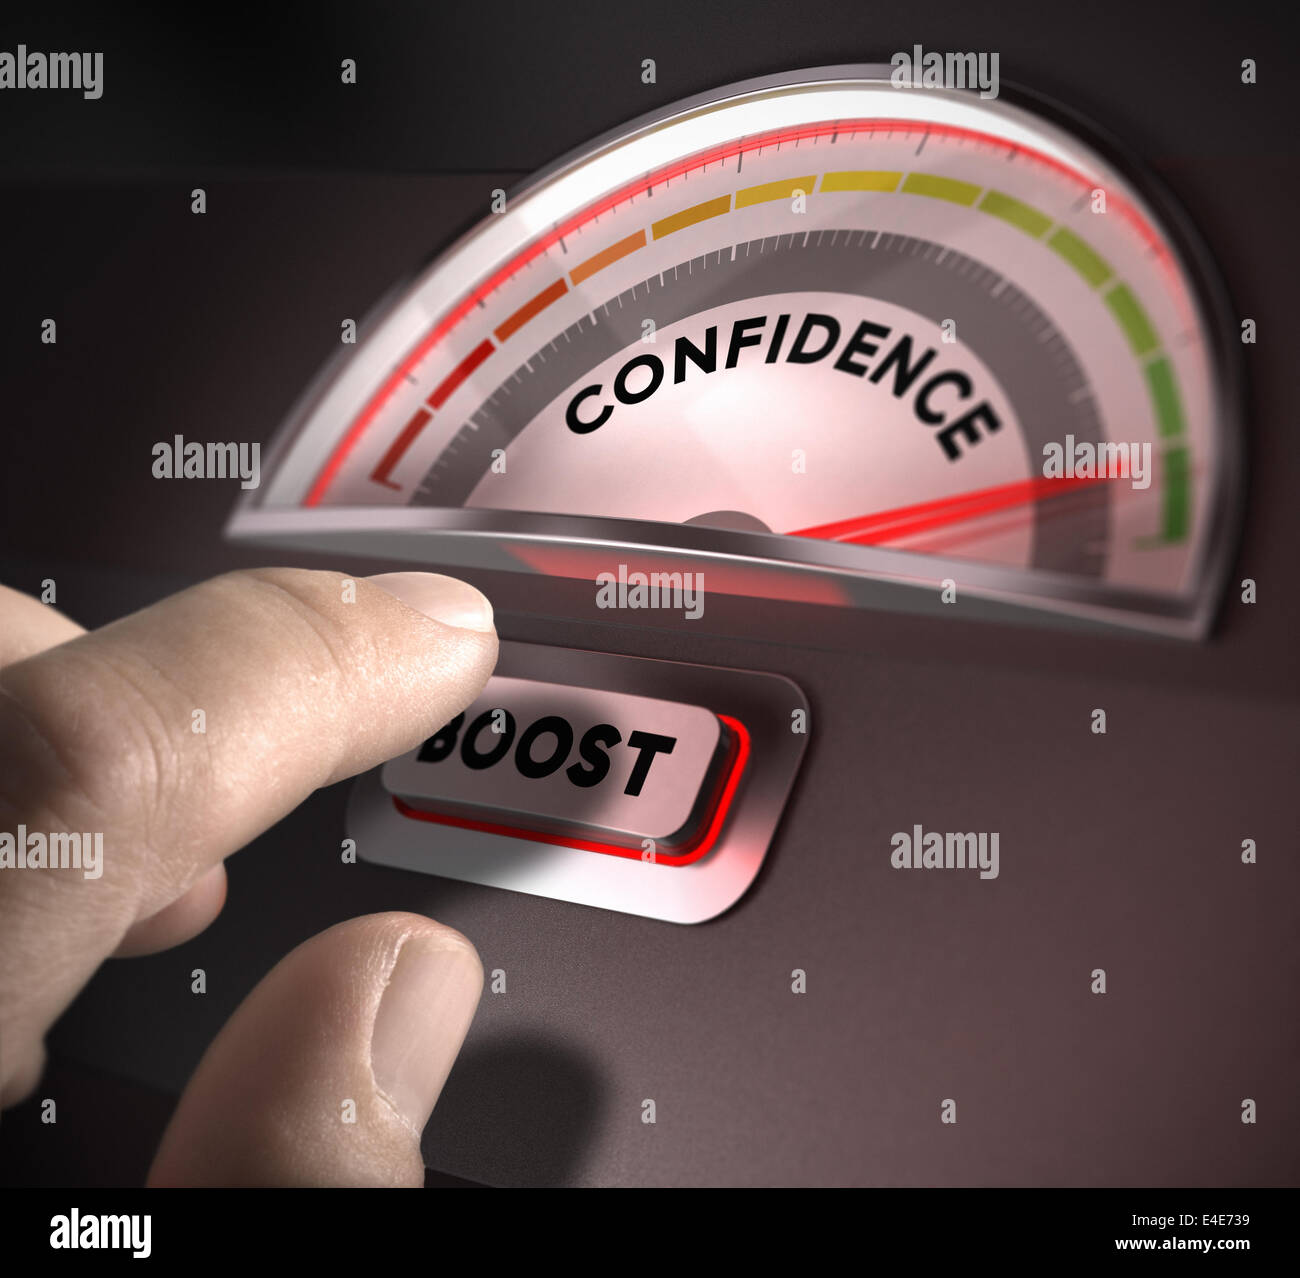 confidence indicator dial, index and boost button over a dark background. Illustration of self-confidence or esteem - Stock Image